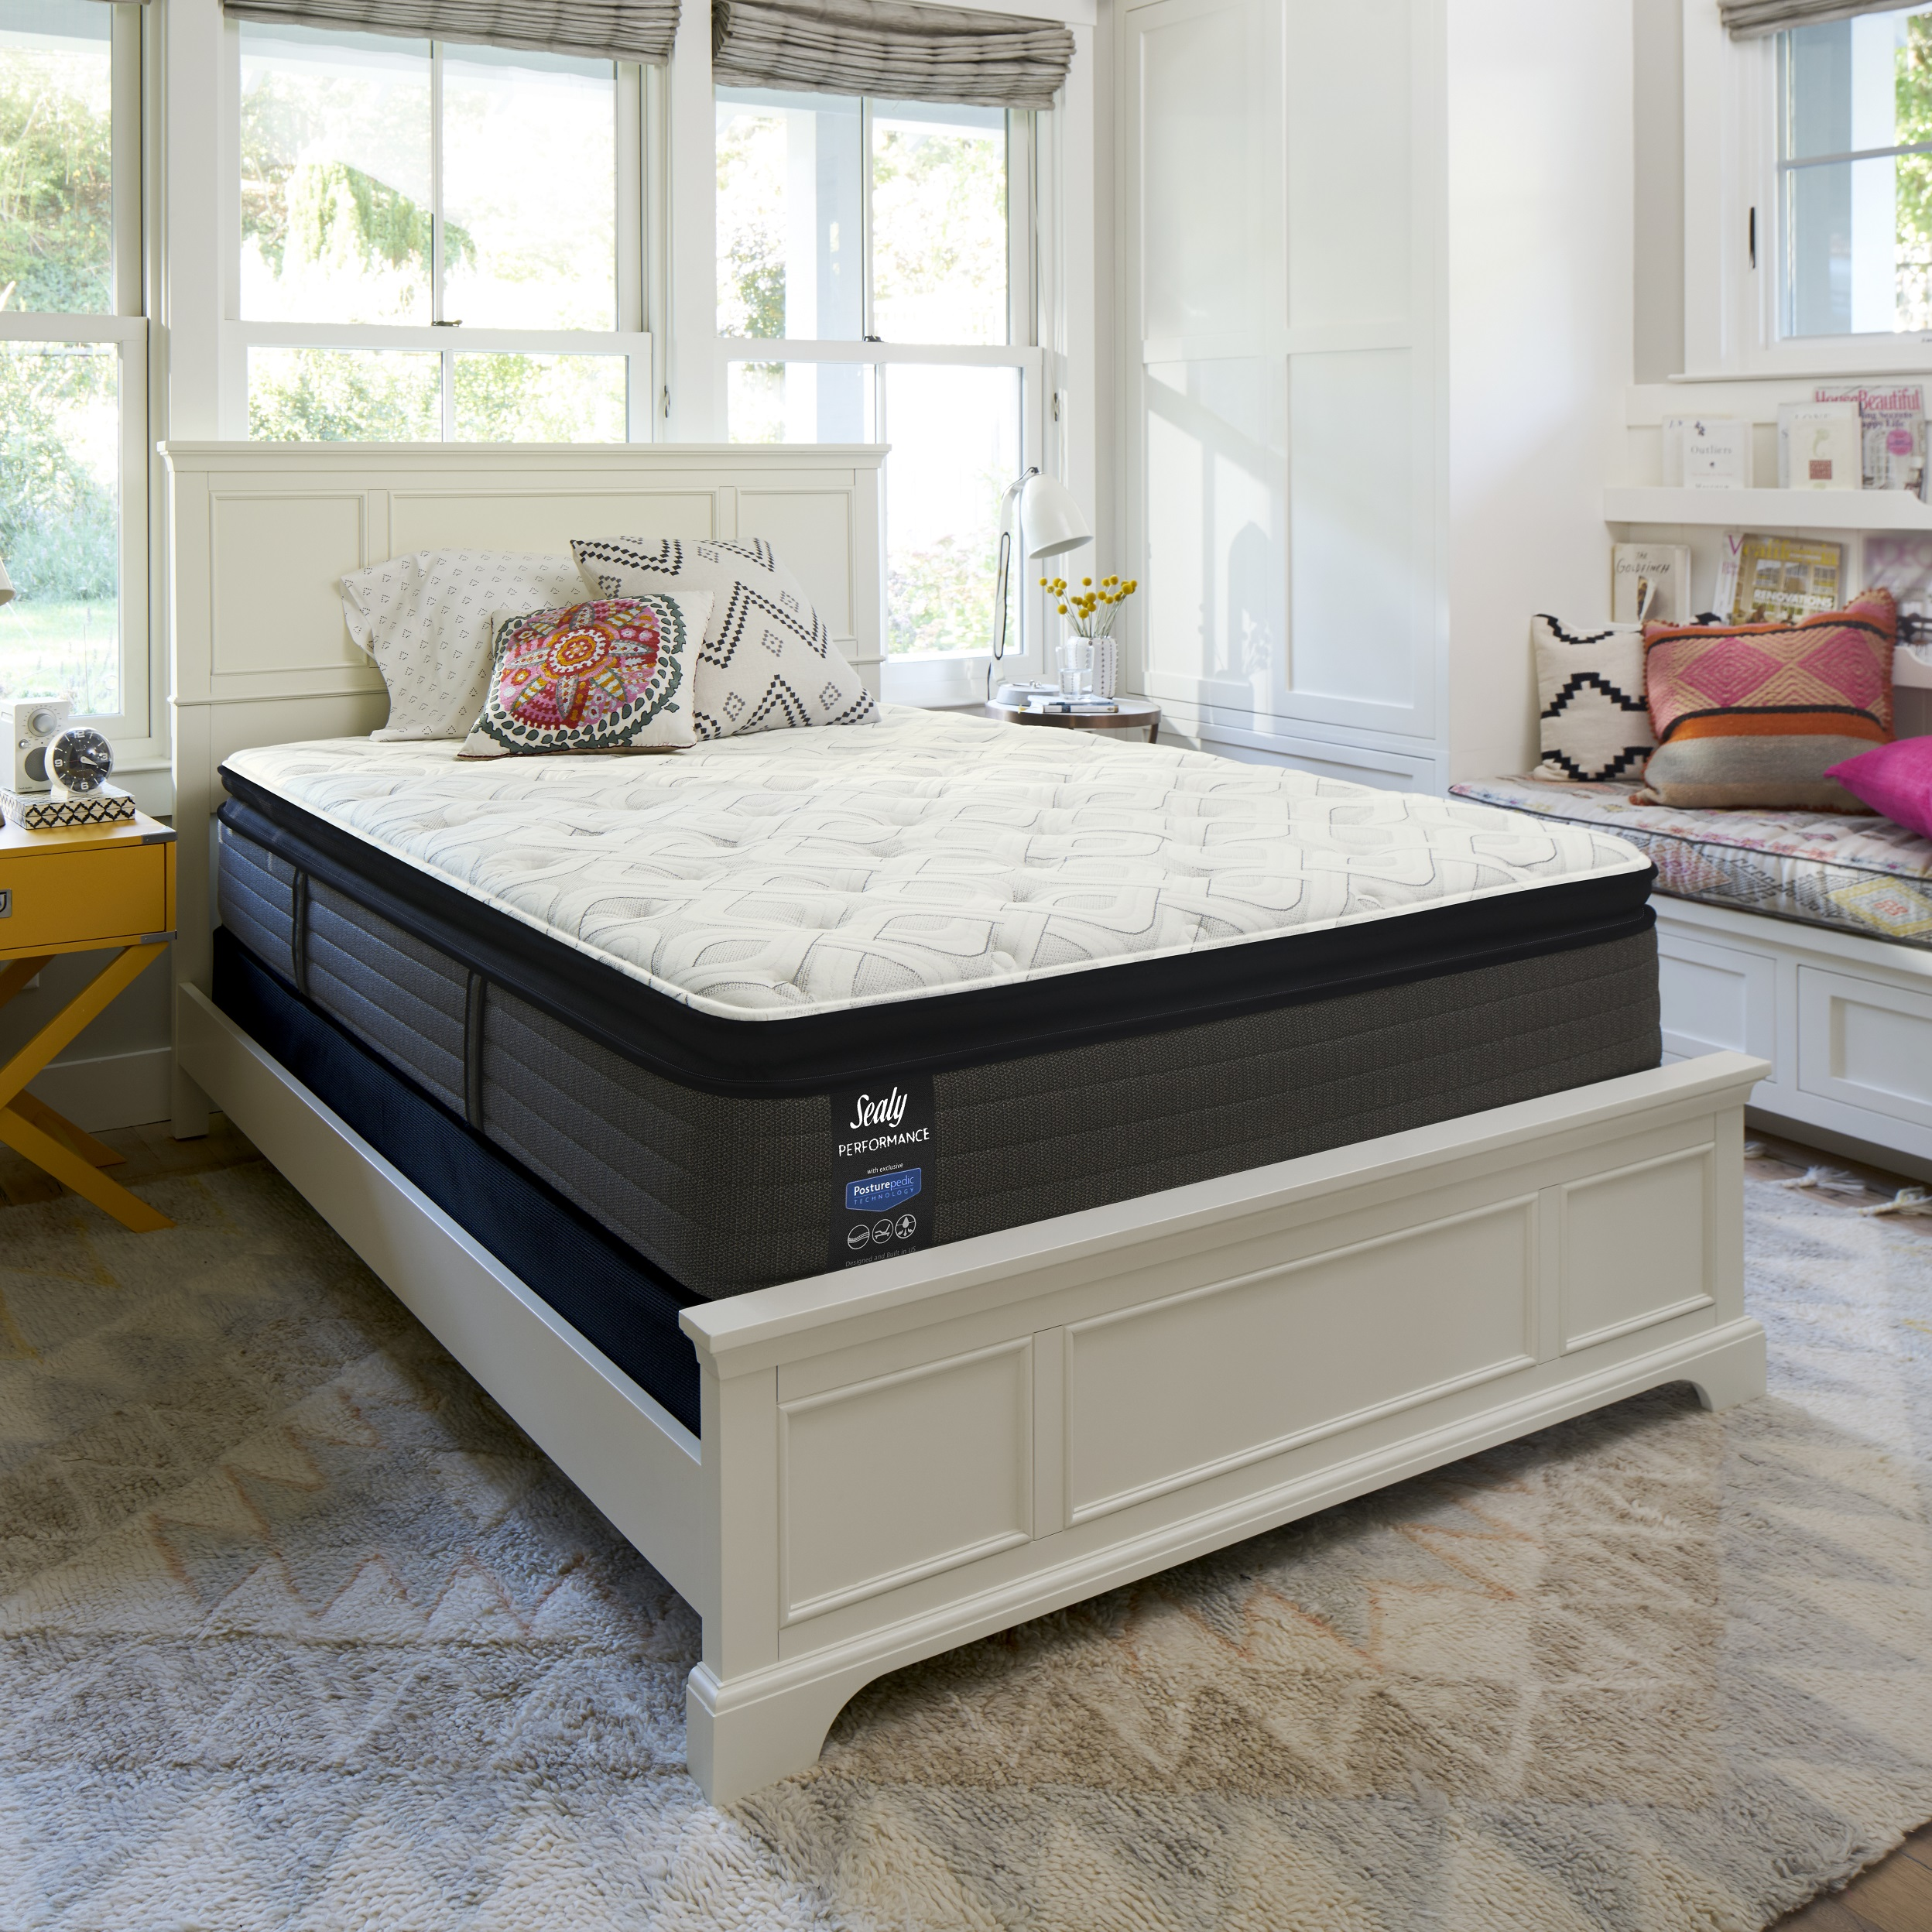 """Sealy Response Performance 14"""" Plush Euro Pillowtop Mattress In Home White-Glove... by Sealy"""